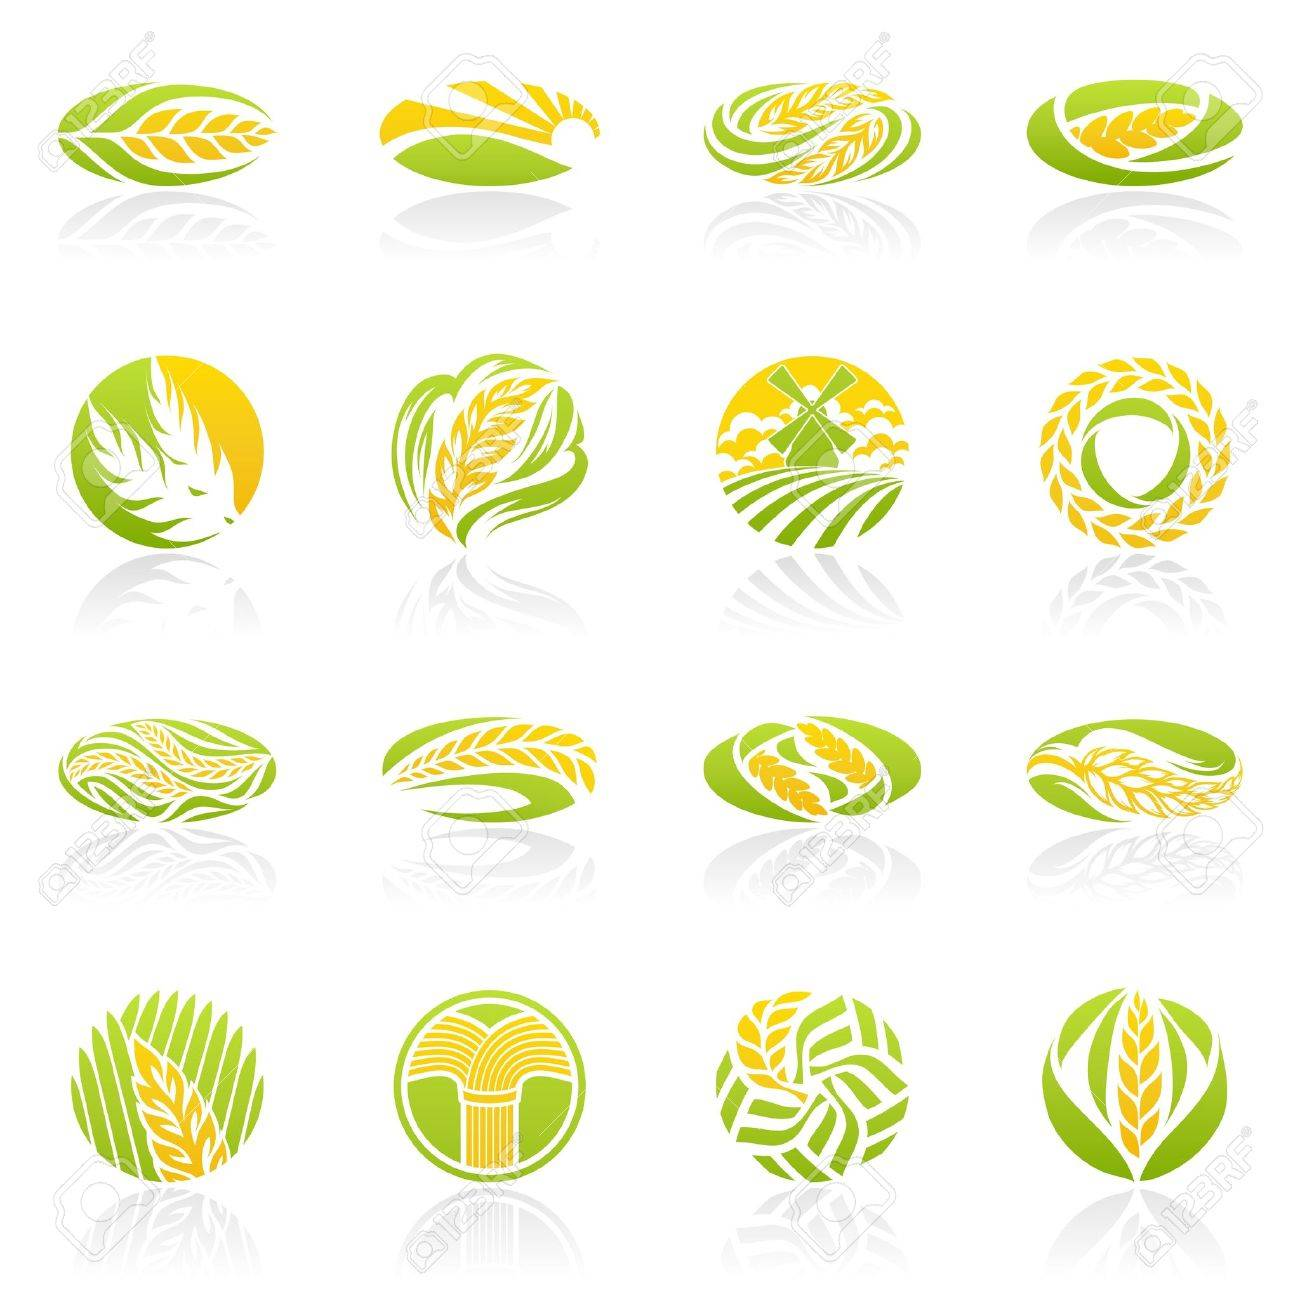 Wheat and rye. logo template set. Elements for design. Icon set. Stock Vector - 10692705